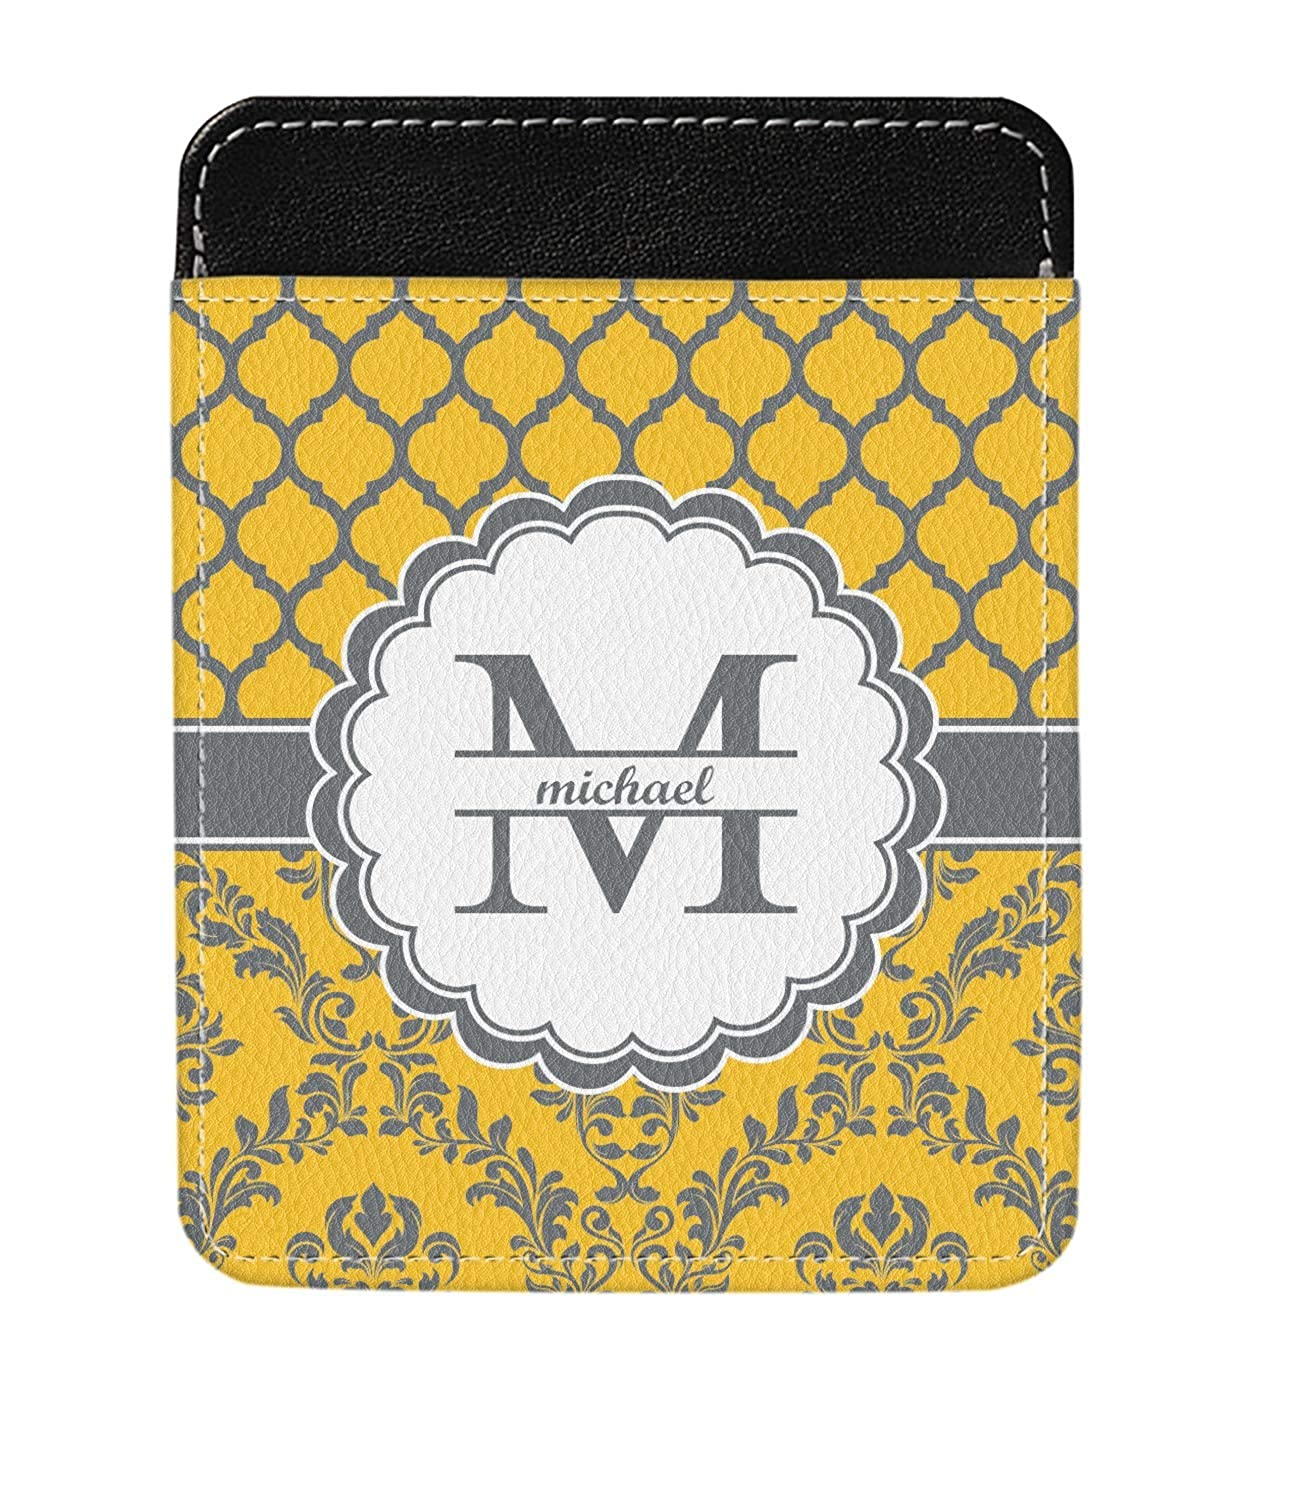 Damask /& Moroccan Genuine Leather Money Clip Personalized